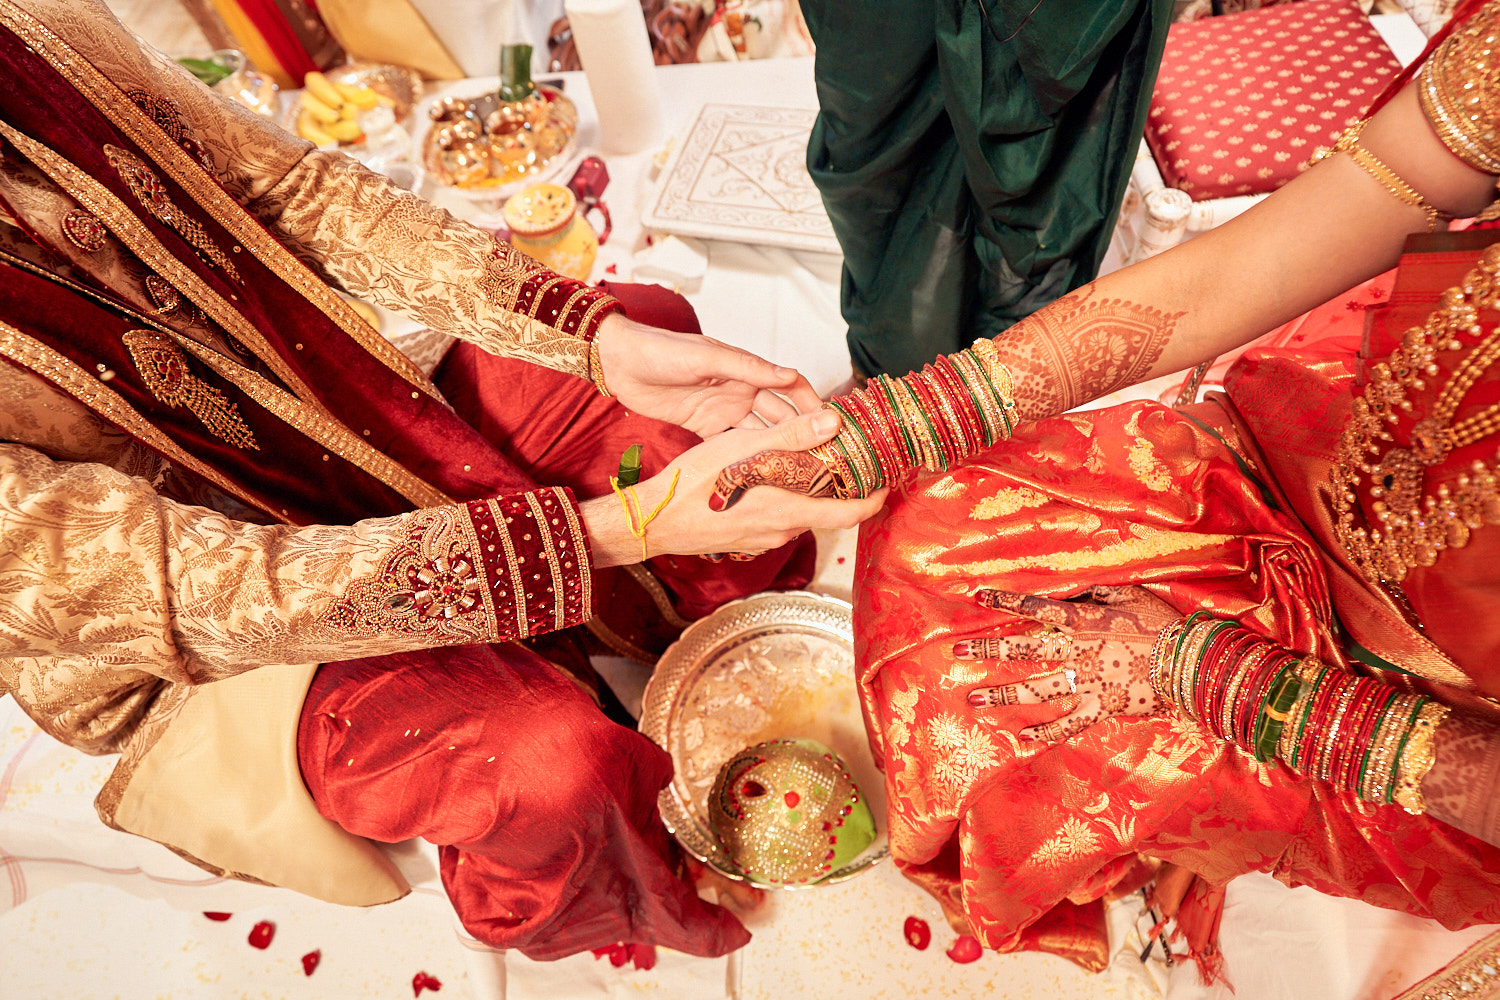 south-indian-wedding-ceremony-photography-by-afewgoodclicks-net-in-saratoga+143